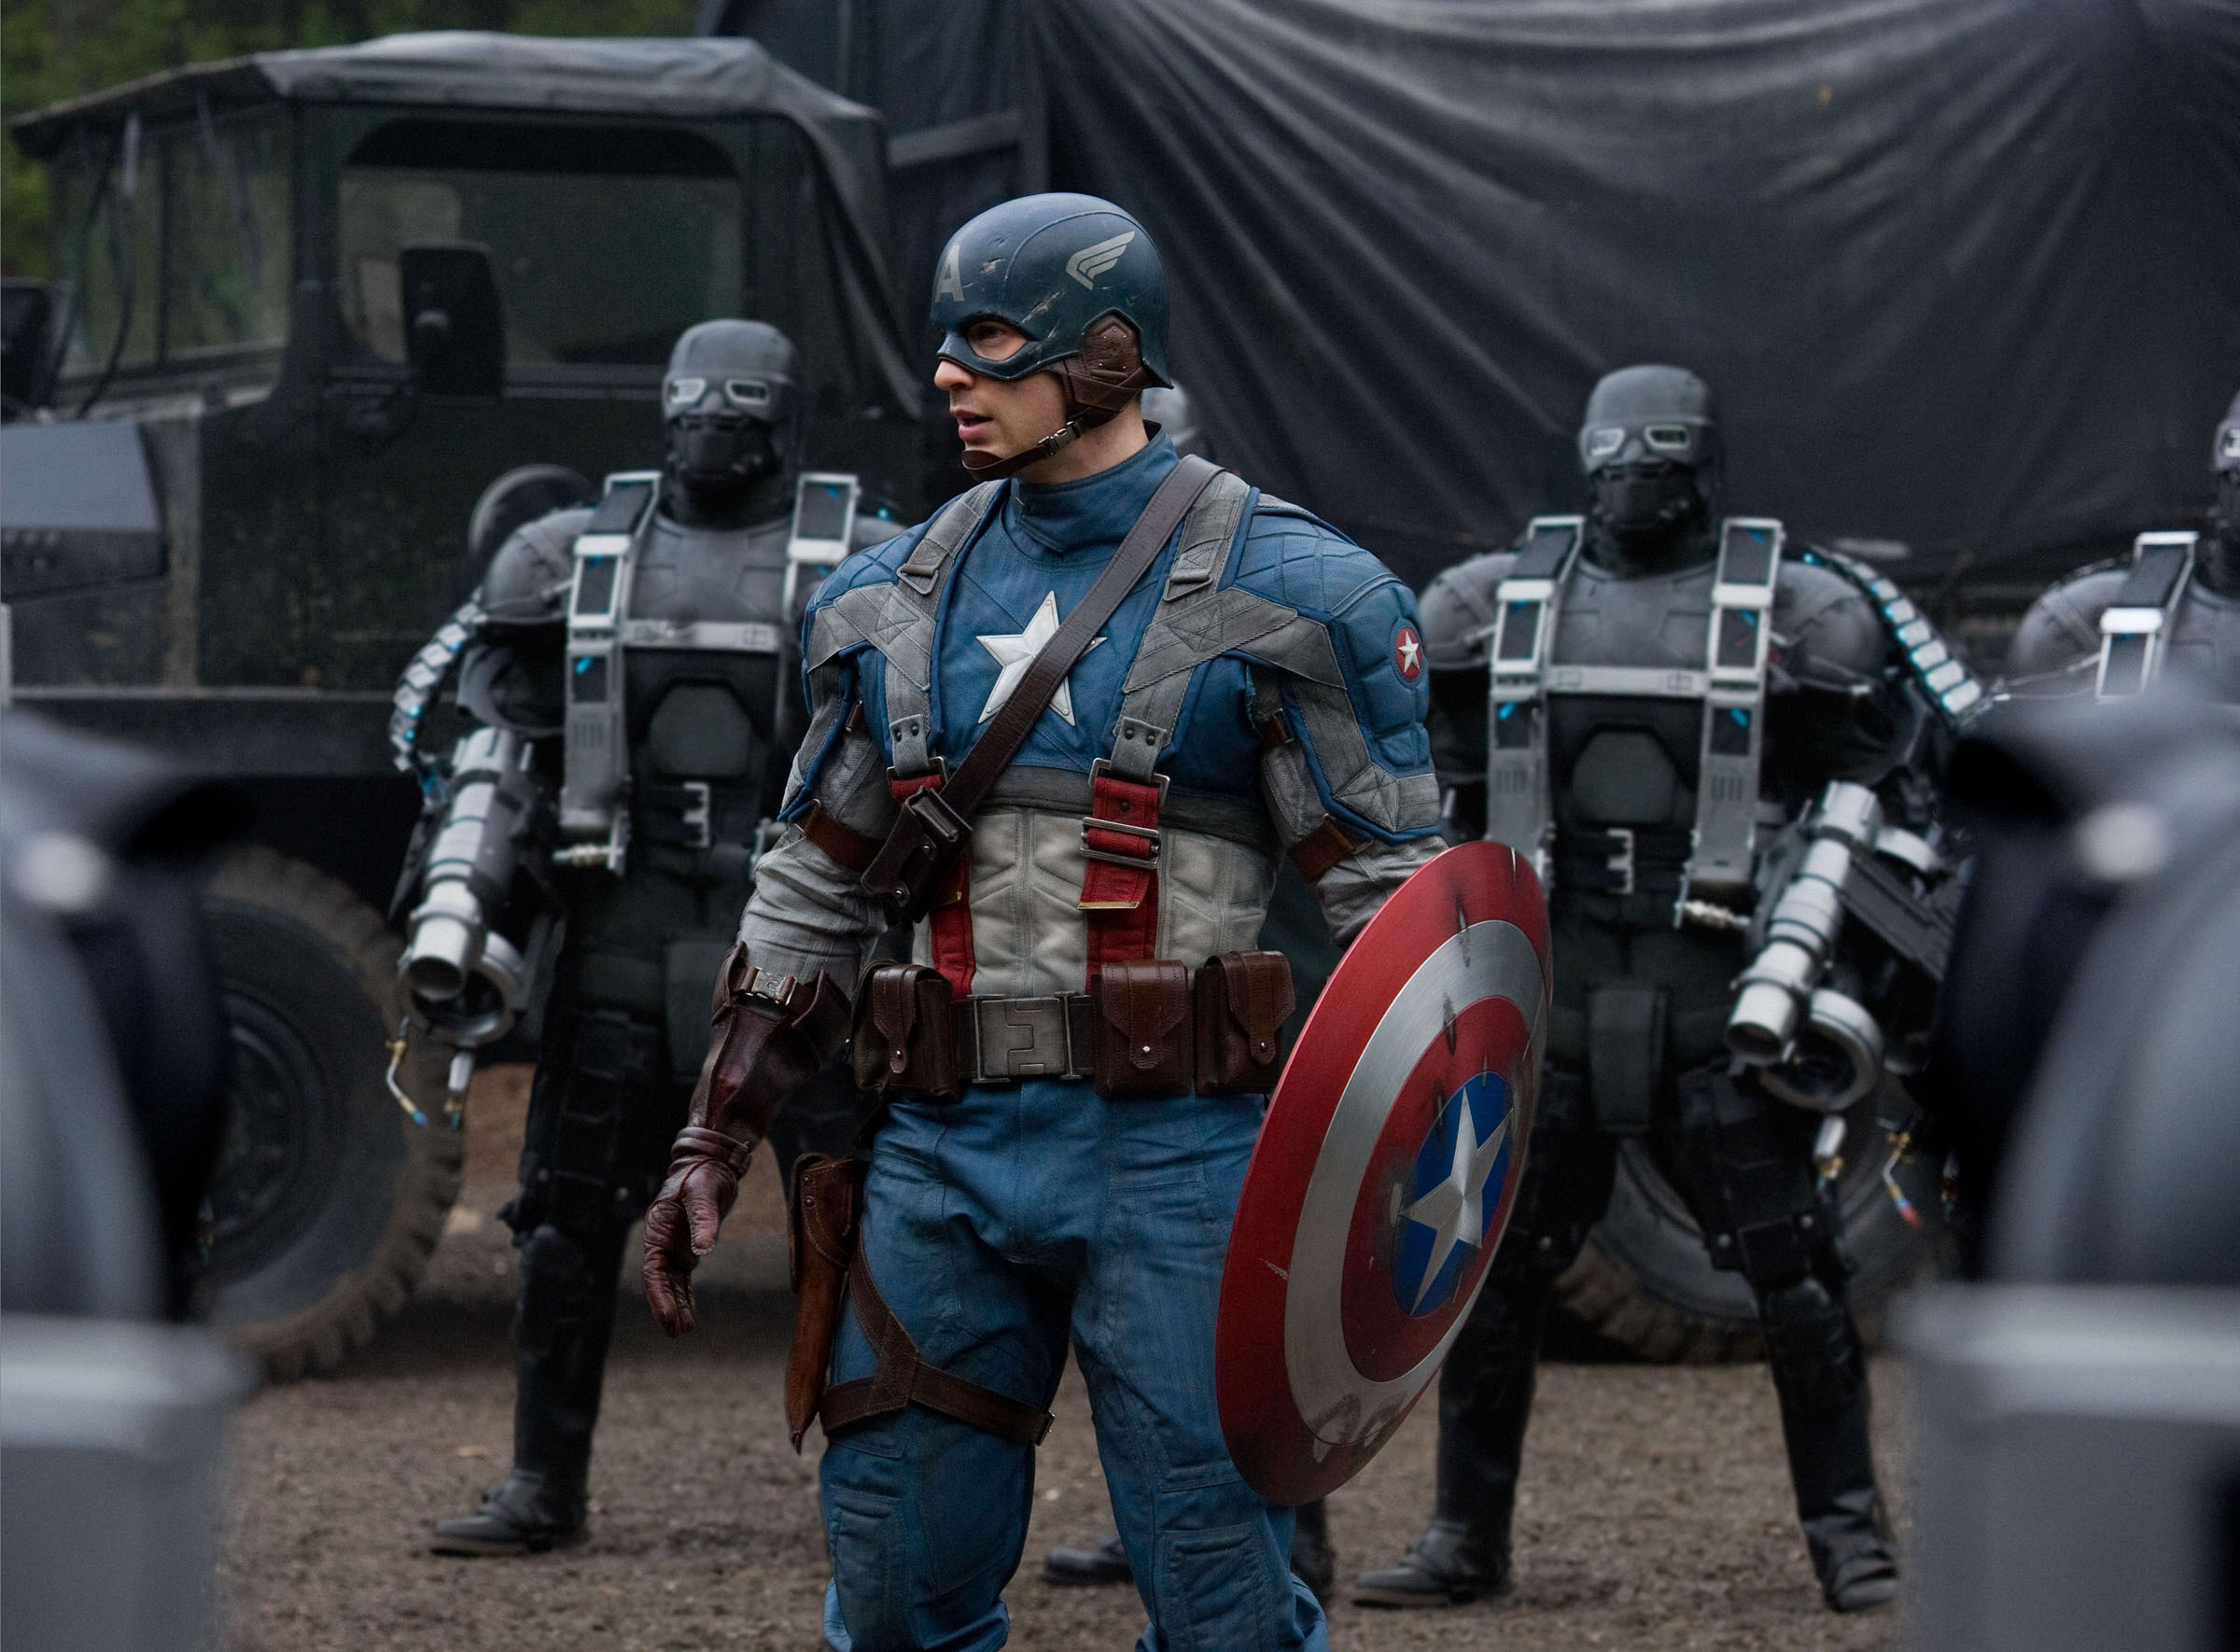 Captain America (Chris Evans, center), surrounded by HYDRA Soldiers in CAPTAIN AMERICA: THE FIRST AVENGER, from Paramount Pictures and Marvel Entertainment.